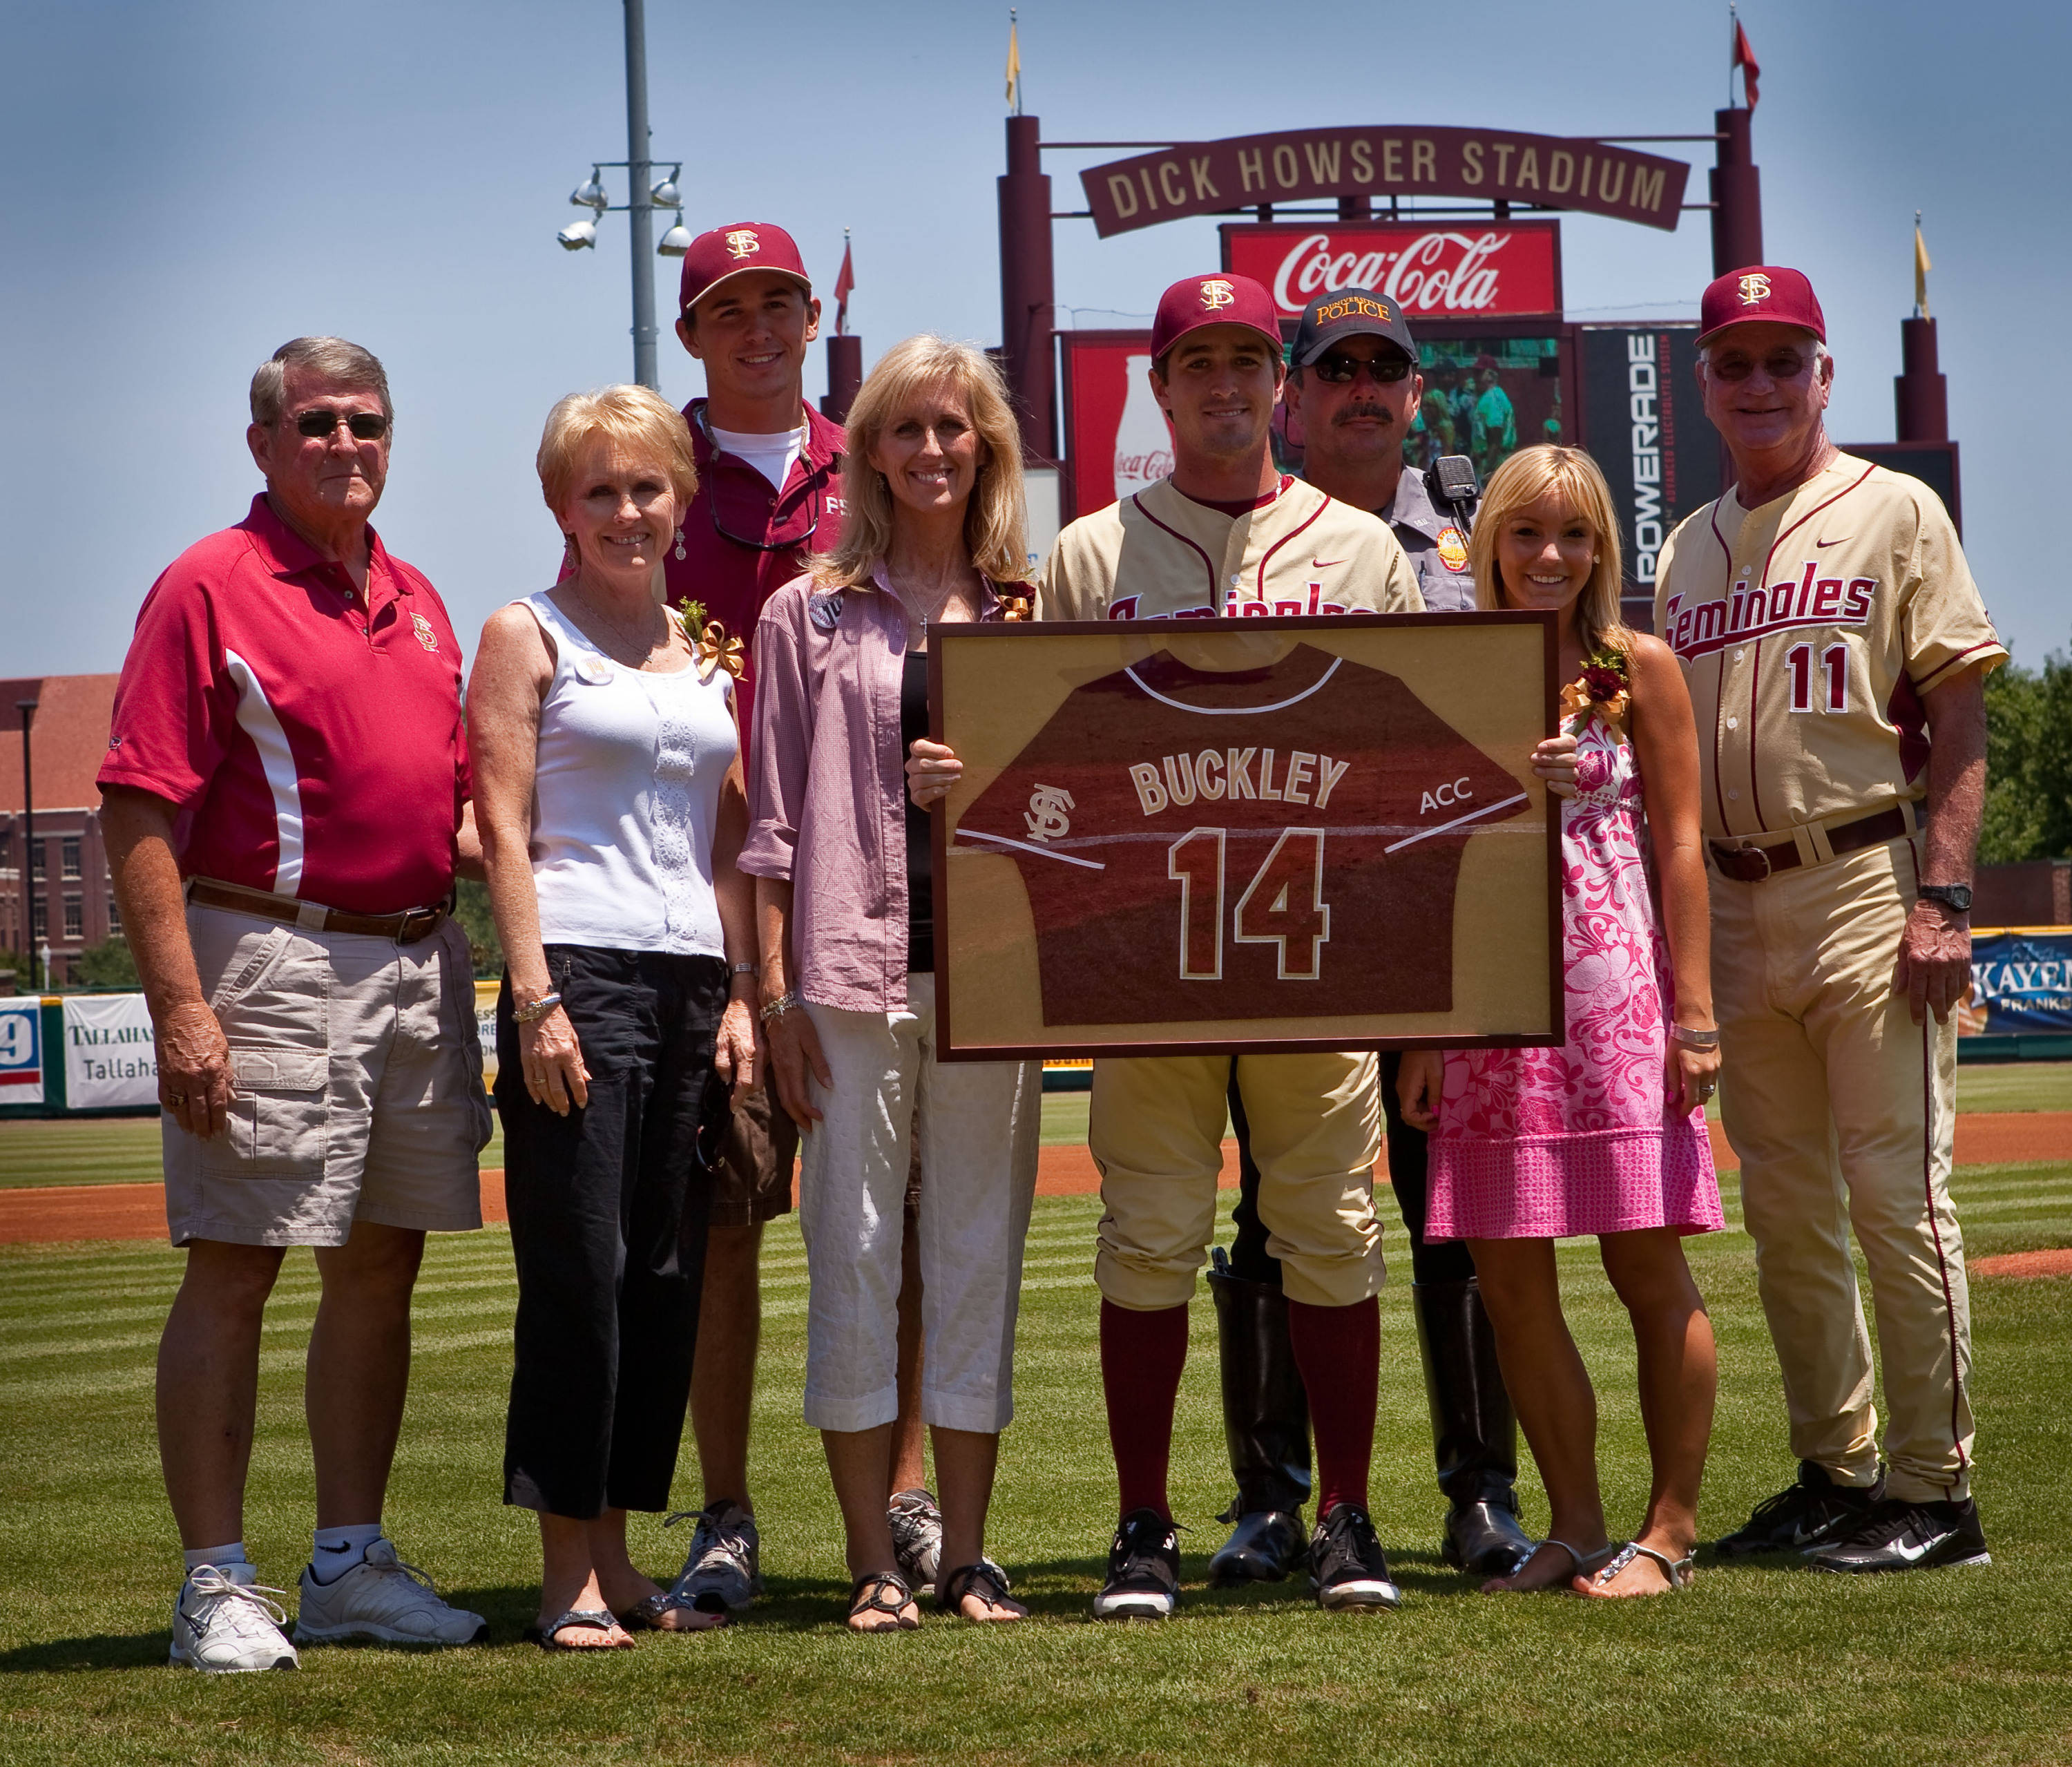 FSU senior pitcher Tye Buckley and his family.